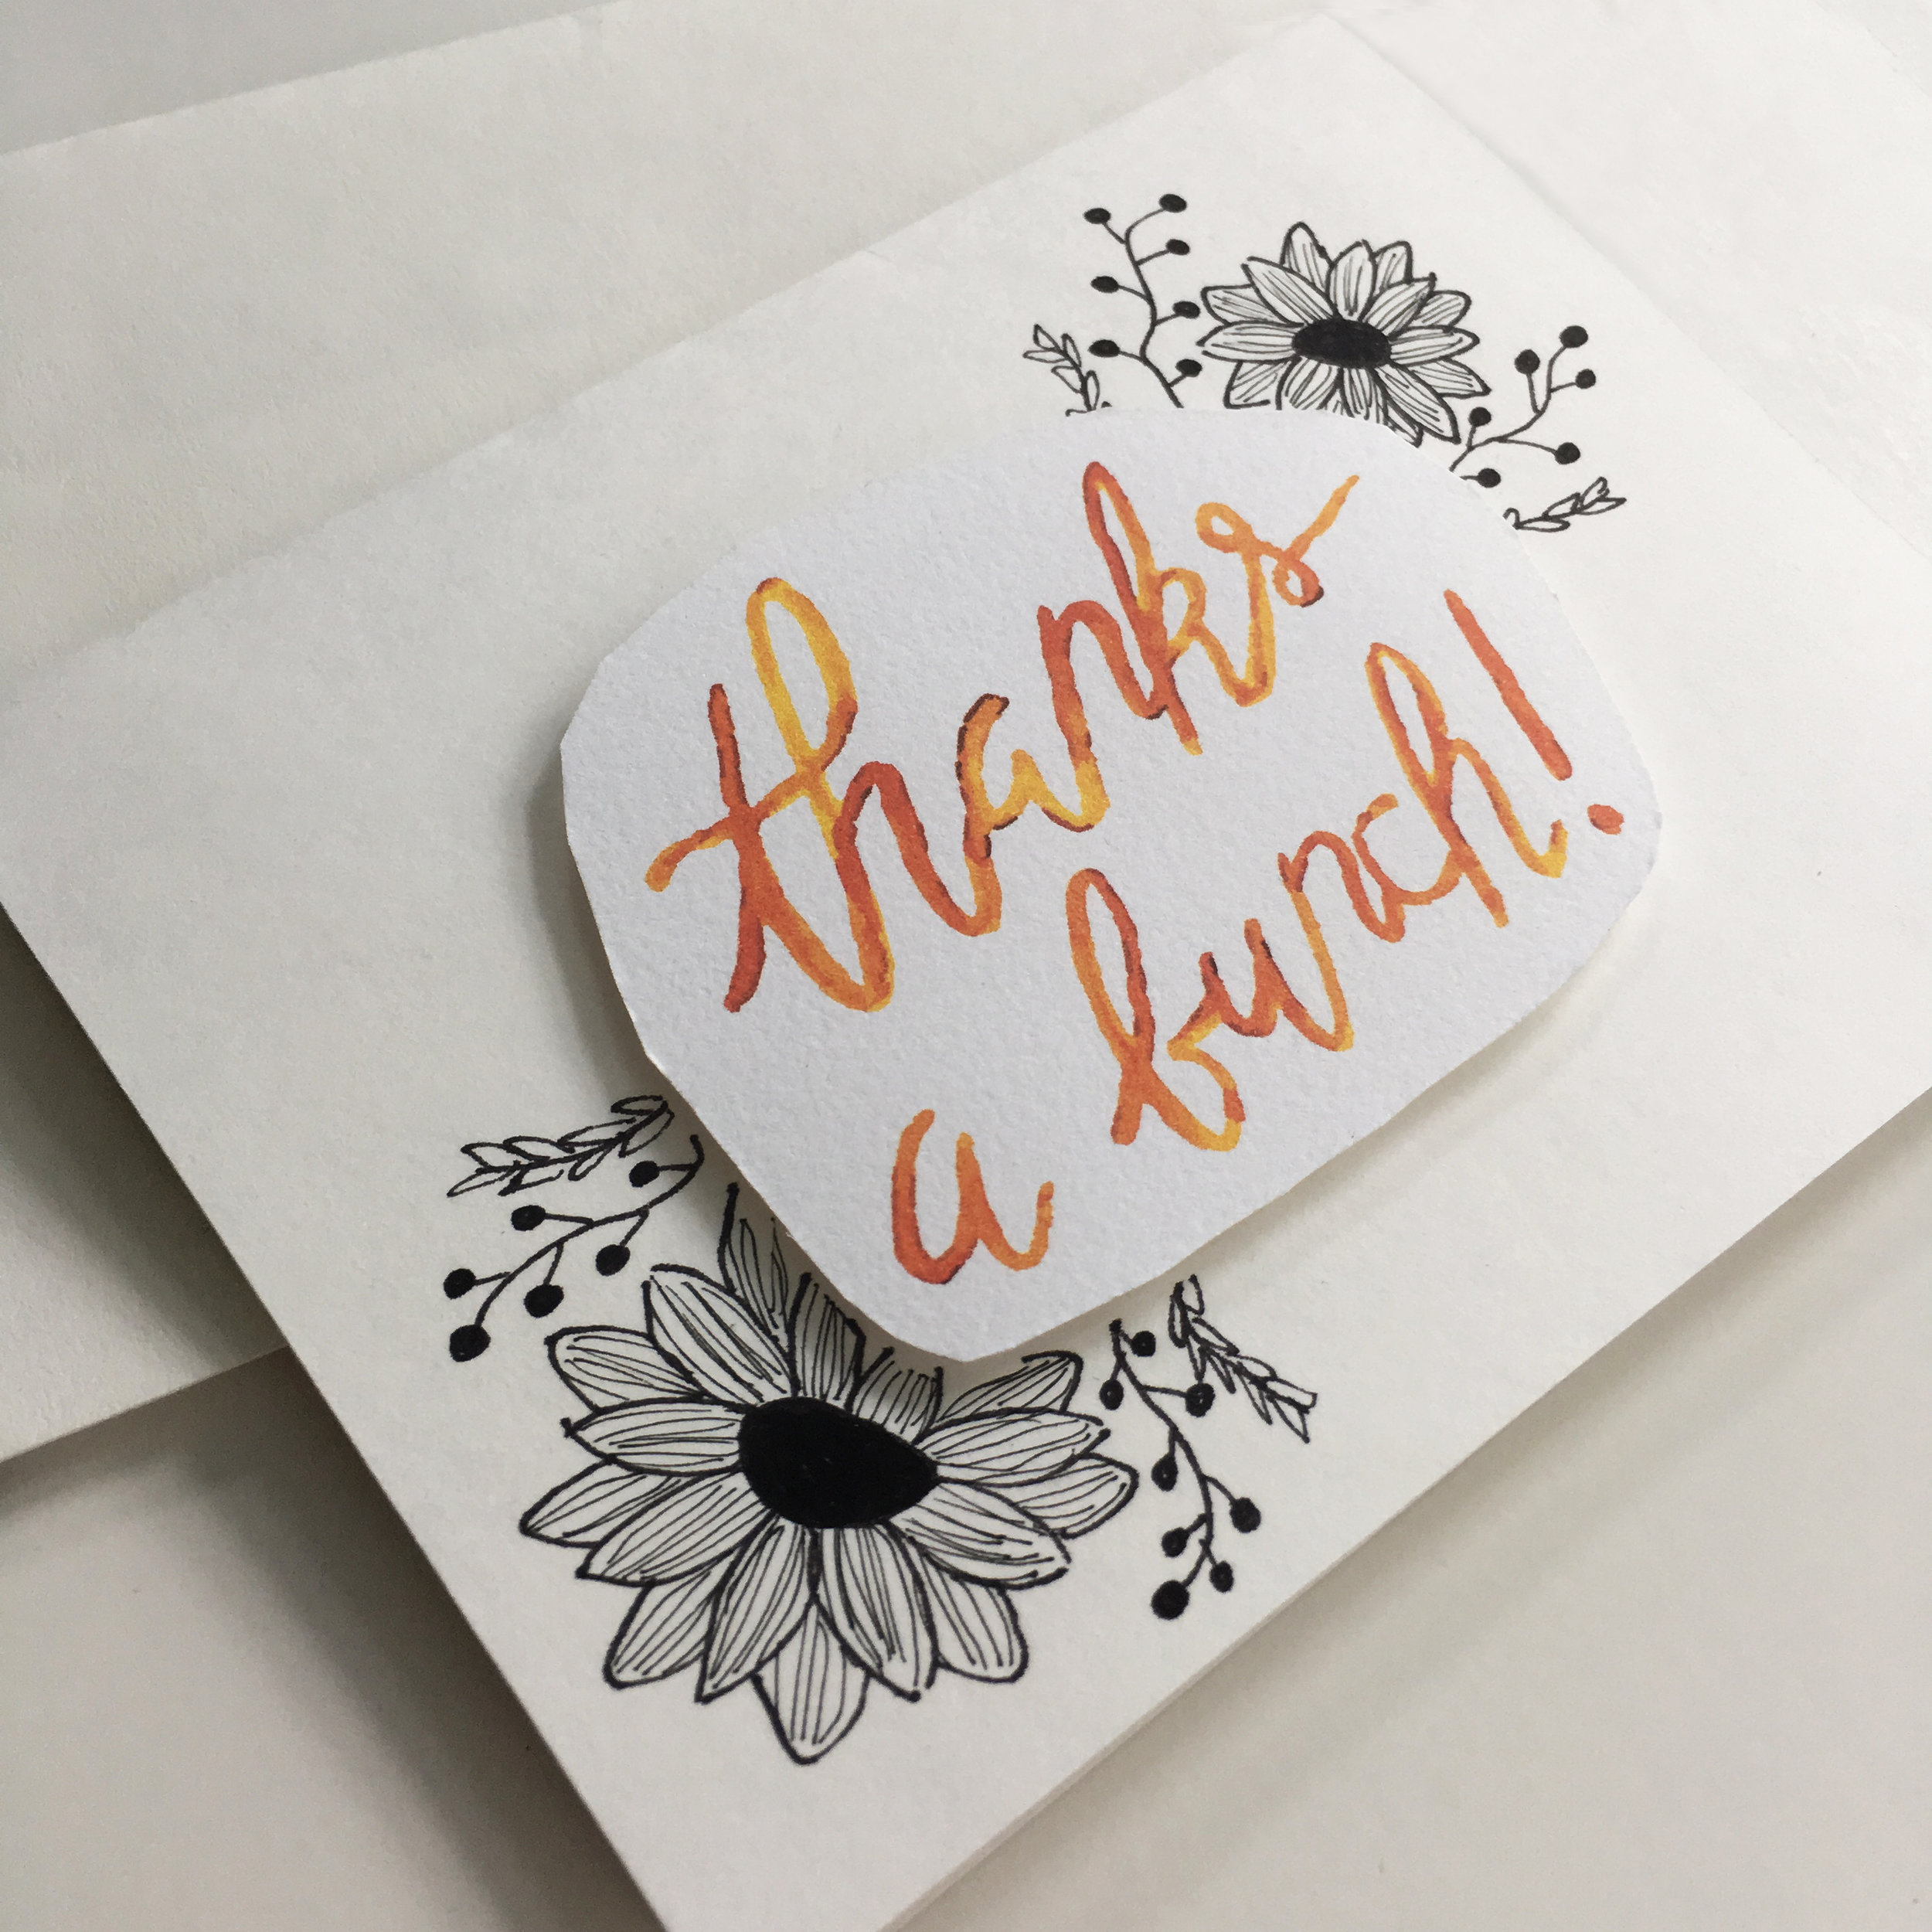 Our Thanks a Bunch! greeting card is available  here .